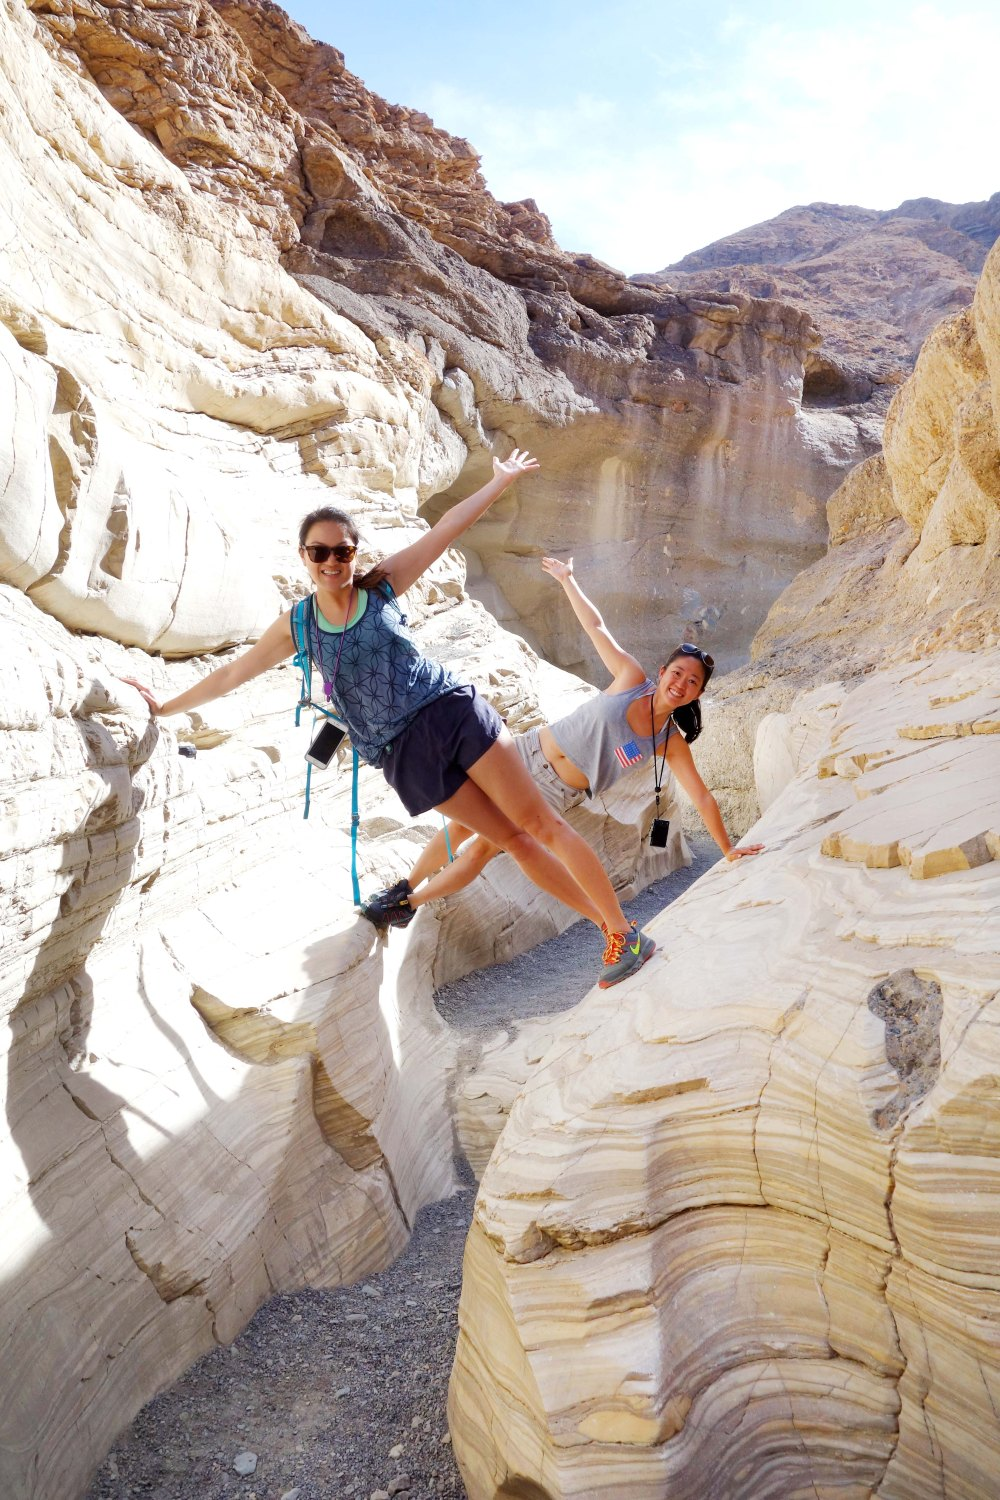 Mosaic Canyon Death Valley California